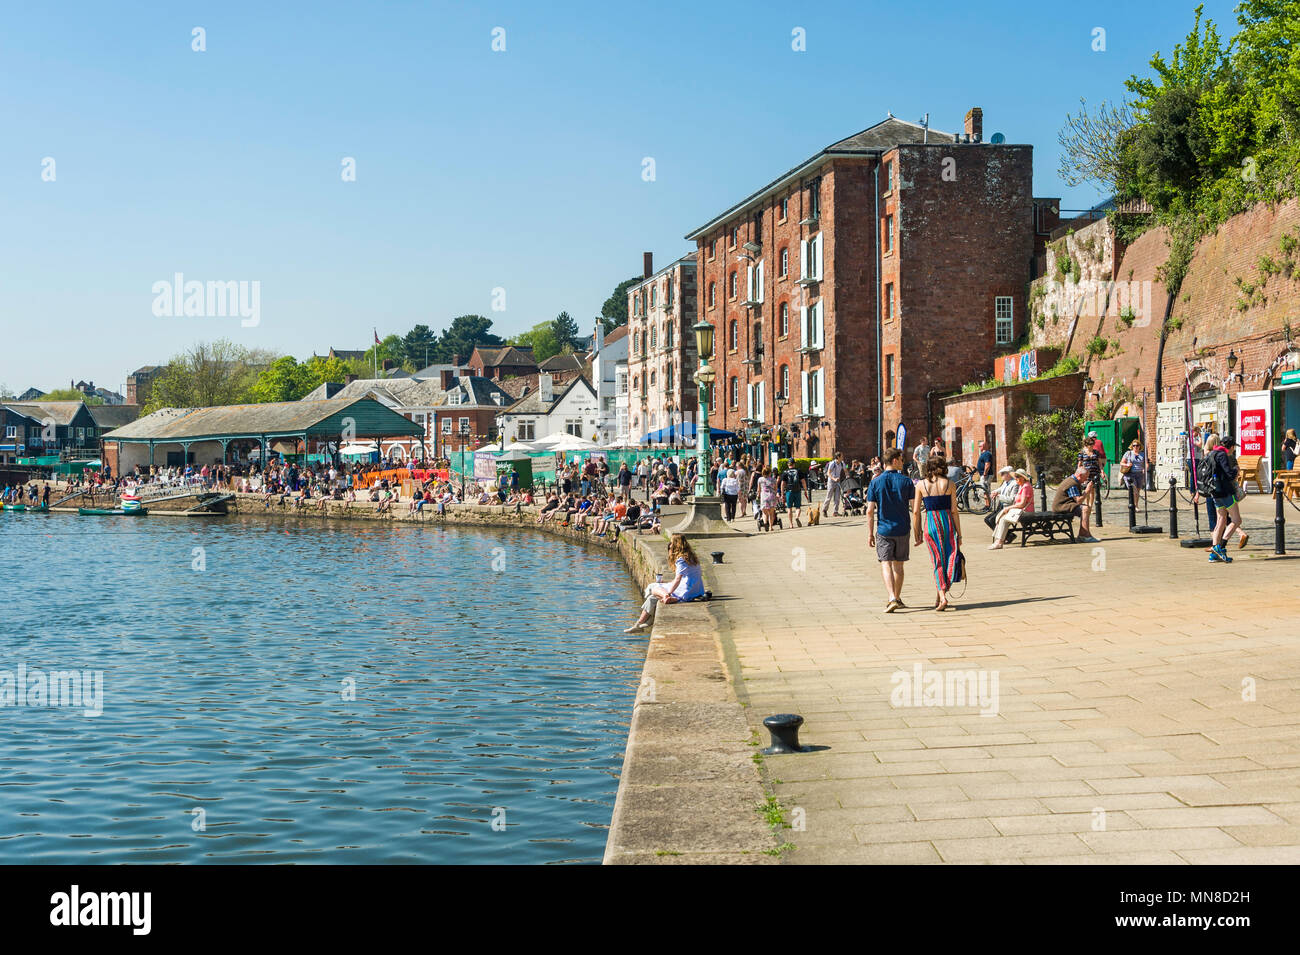 Locals and tourists strolling and shopping at Exeter Quay on a sunny Sunday afternoon, Exeter, UK. - Stock Image